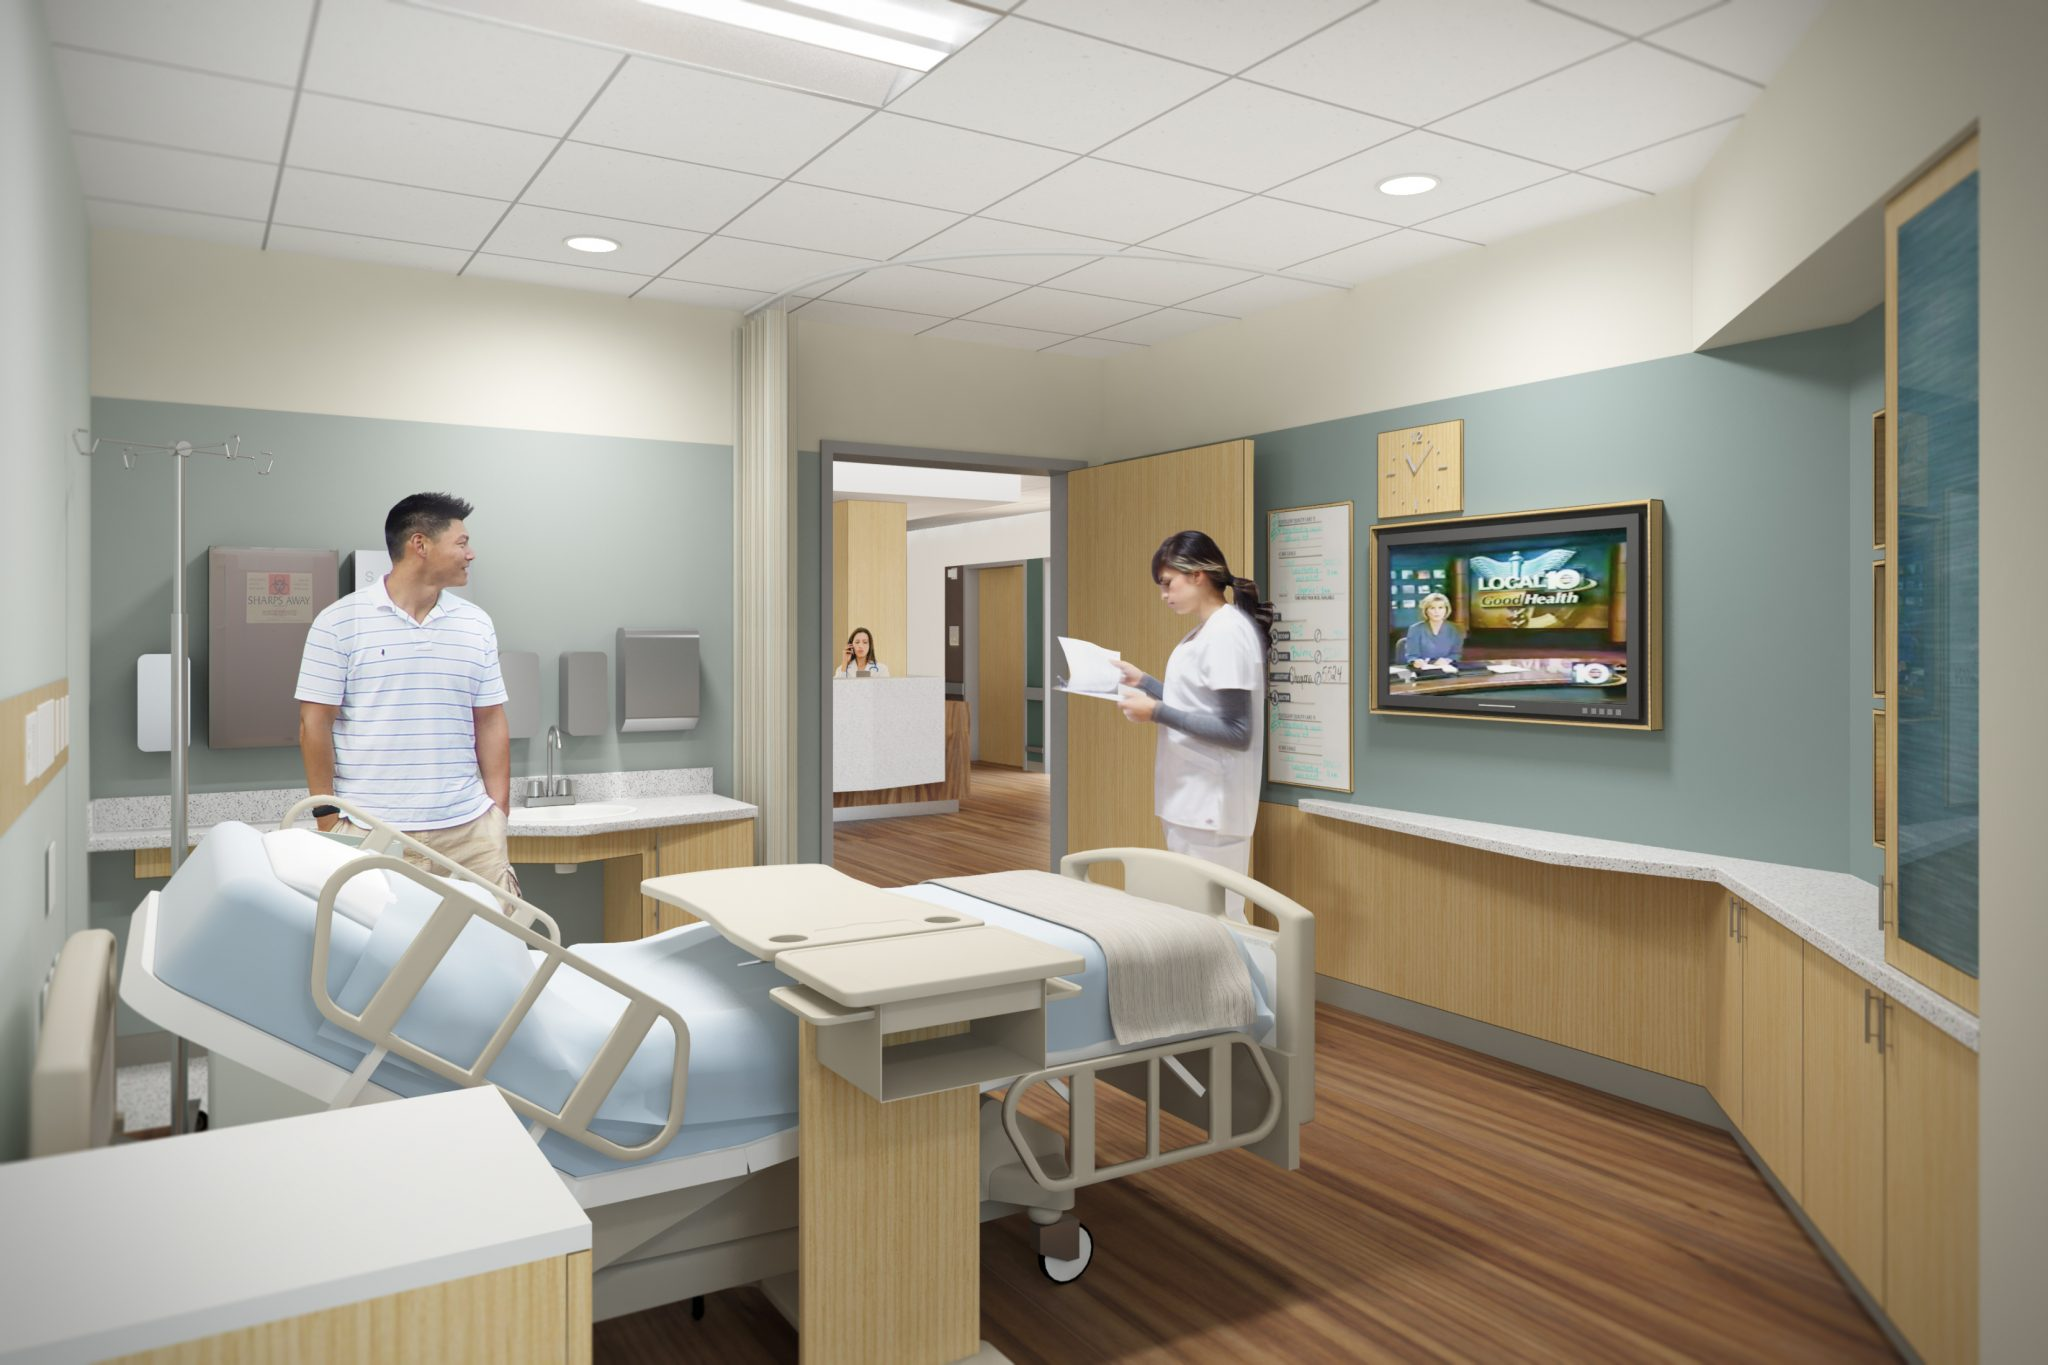 Henry Mayo Newhall Hospital - Rendering of Patient Room via HMC website